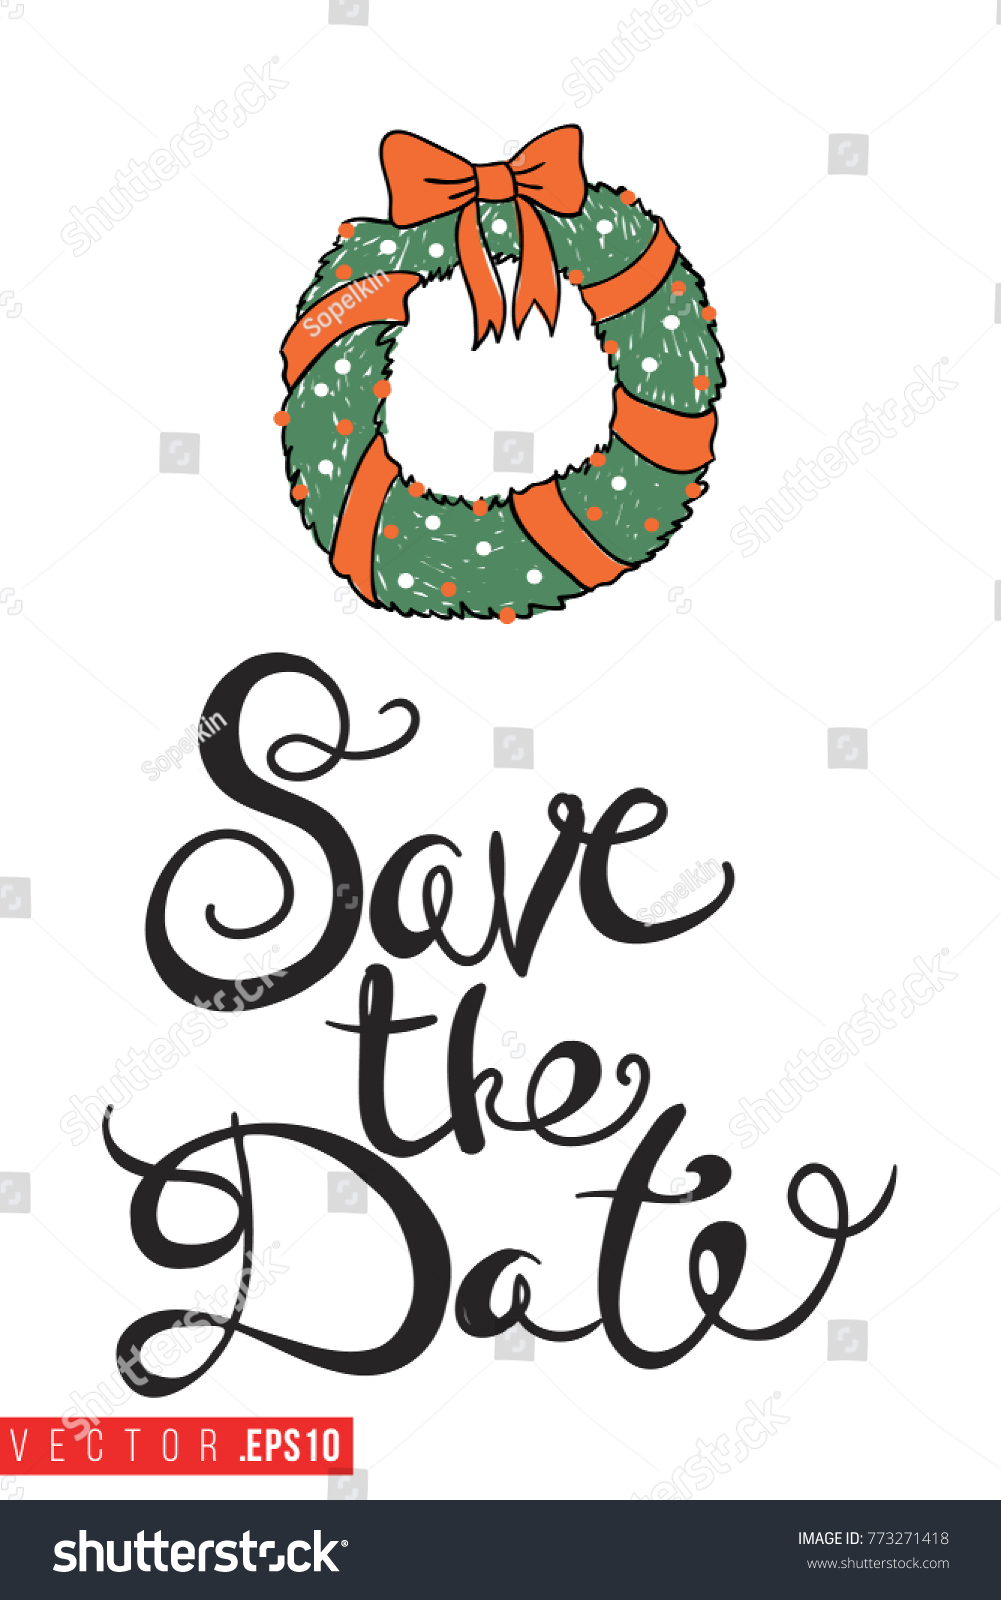 Christmas Save The Date Clipart.Xmas Greeting Card Christmas Wreath Text Stock Vector